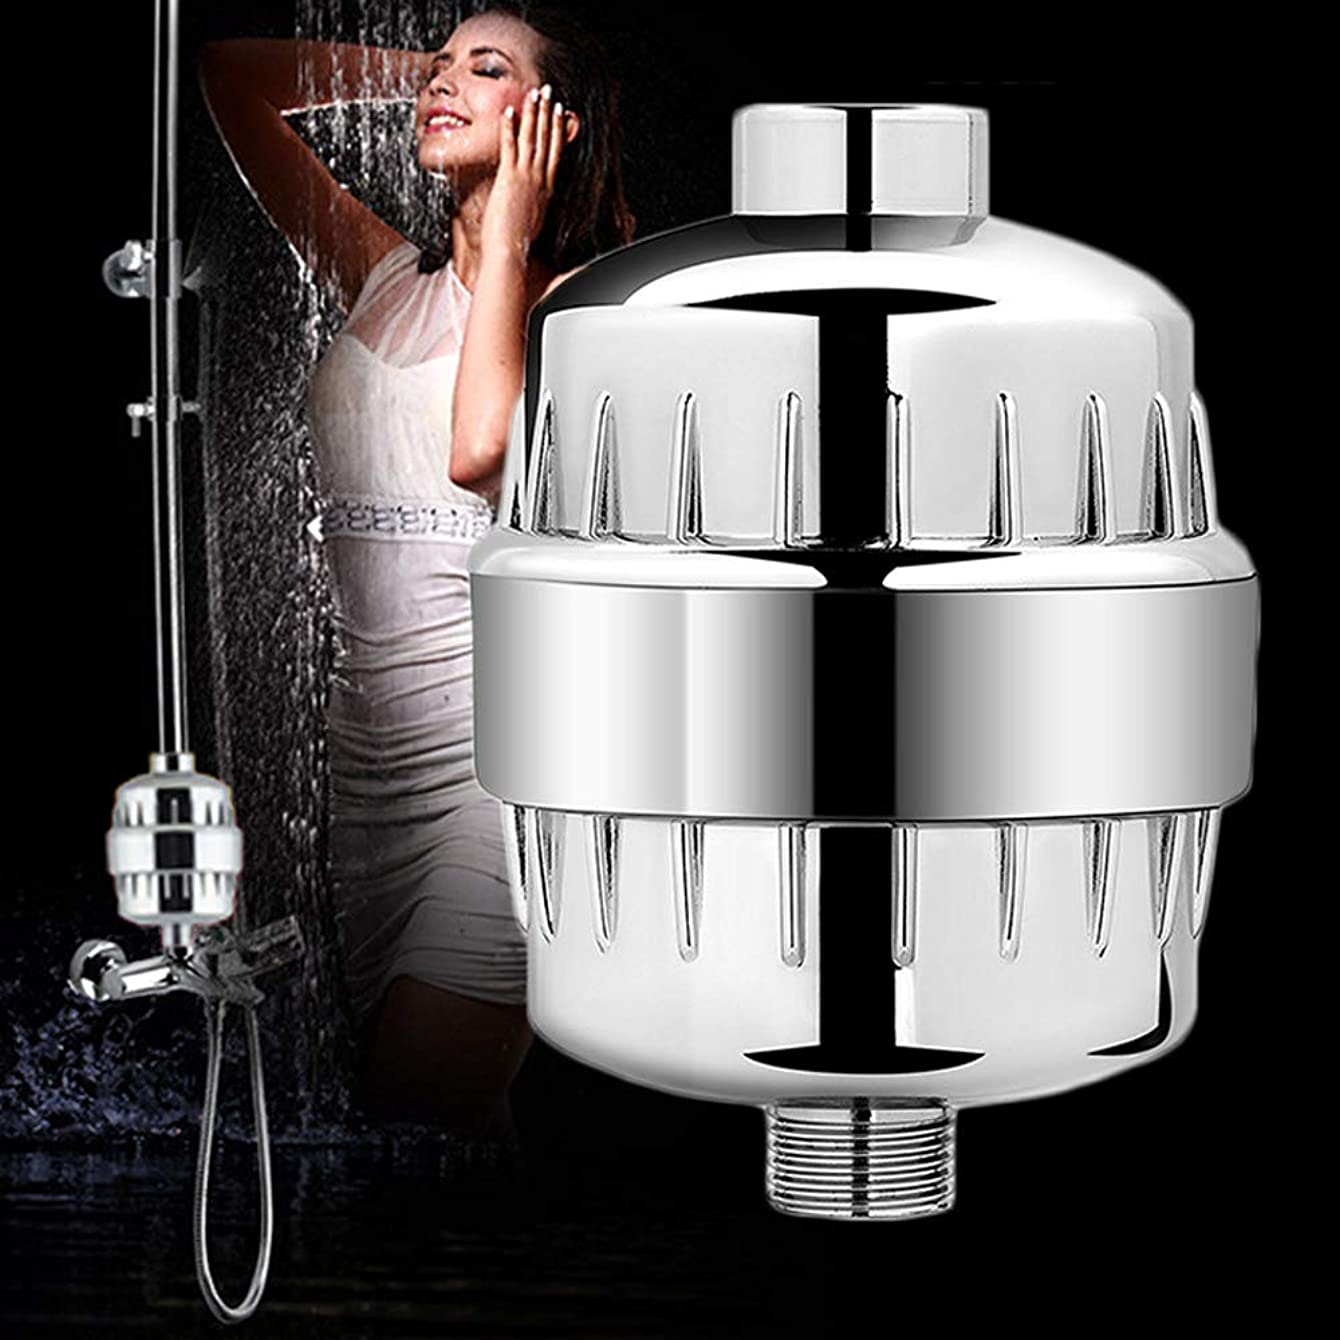 High Output Shower Fliter,Hard Water Softener,Filtered Shower Head with 2 Replaceable Filter Cartridges,Removes Chlorine Fluoride Heavy Metals & Other Sediments Reduces Dry Itchy Skin